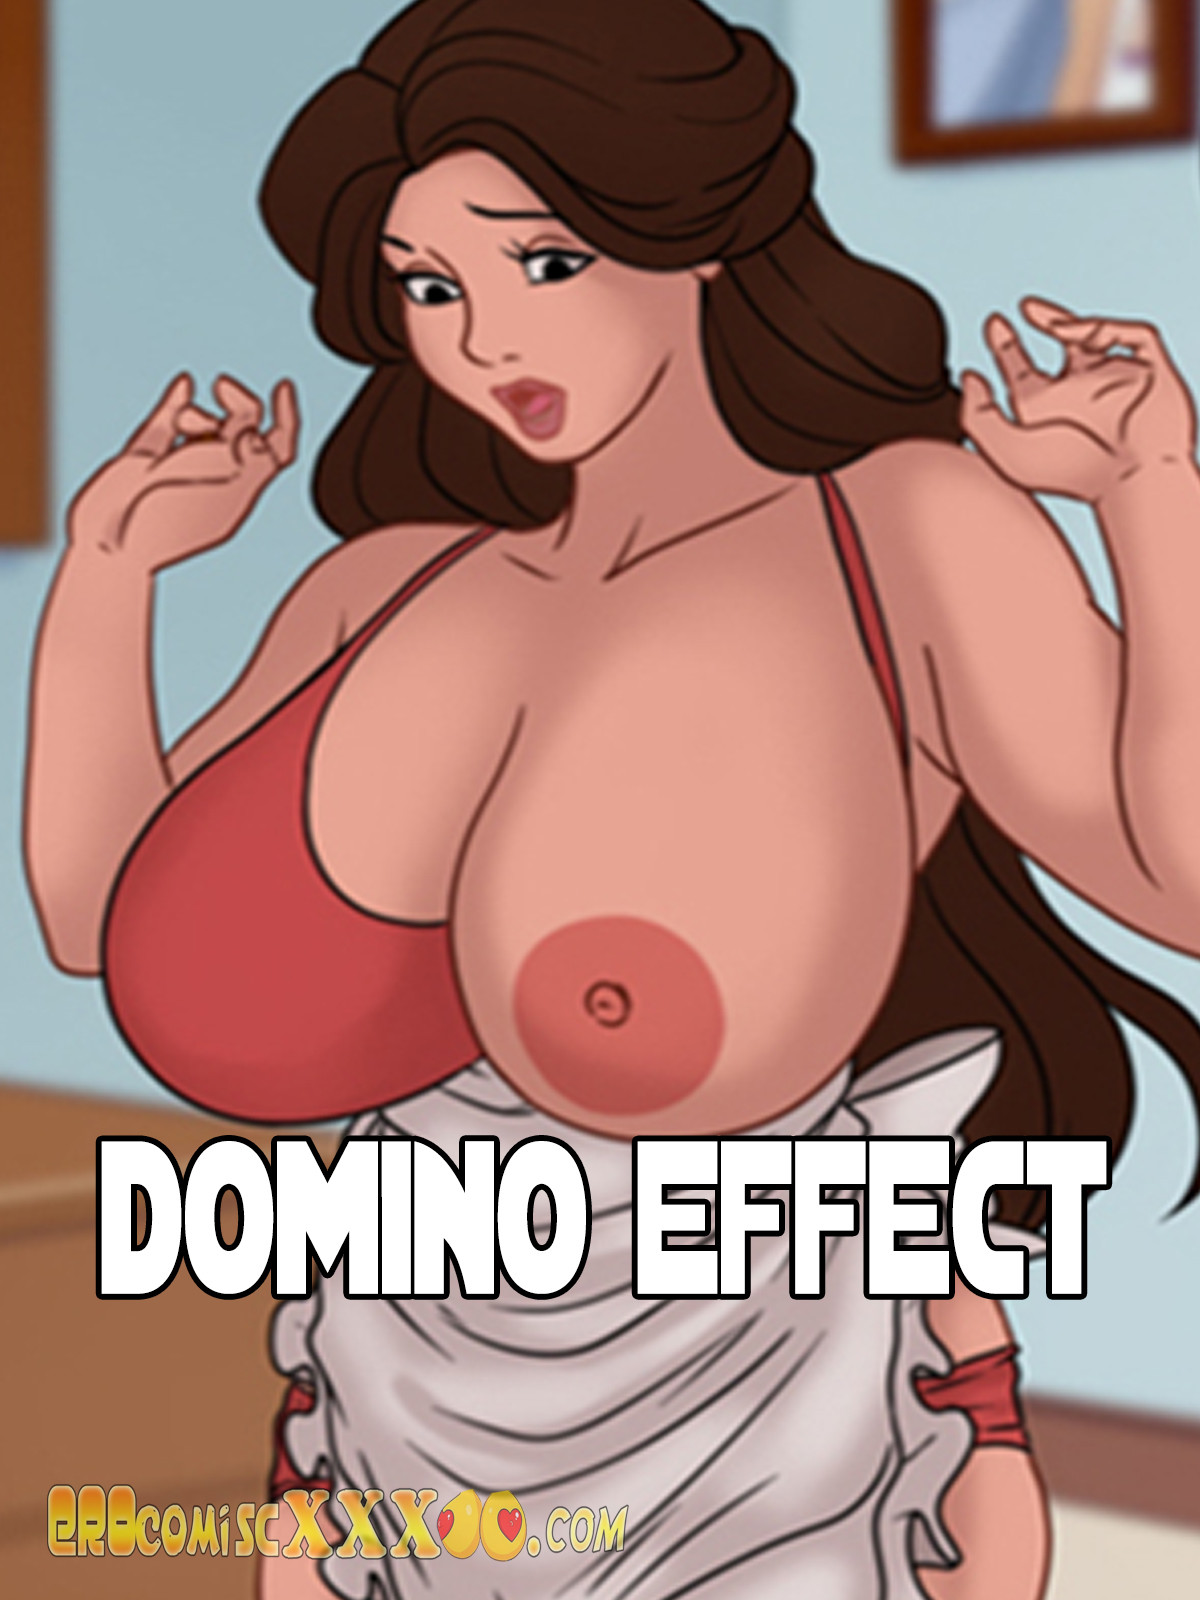 001 30 - DOMINO EFFECT - (MILFTOON).